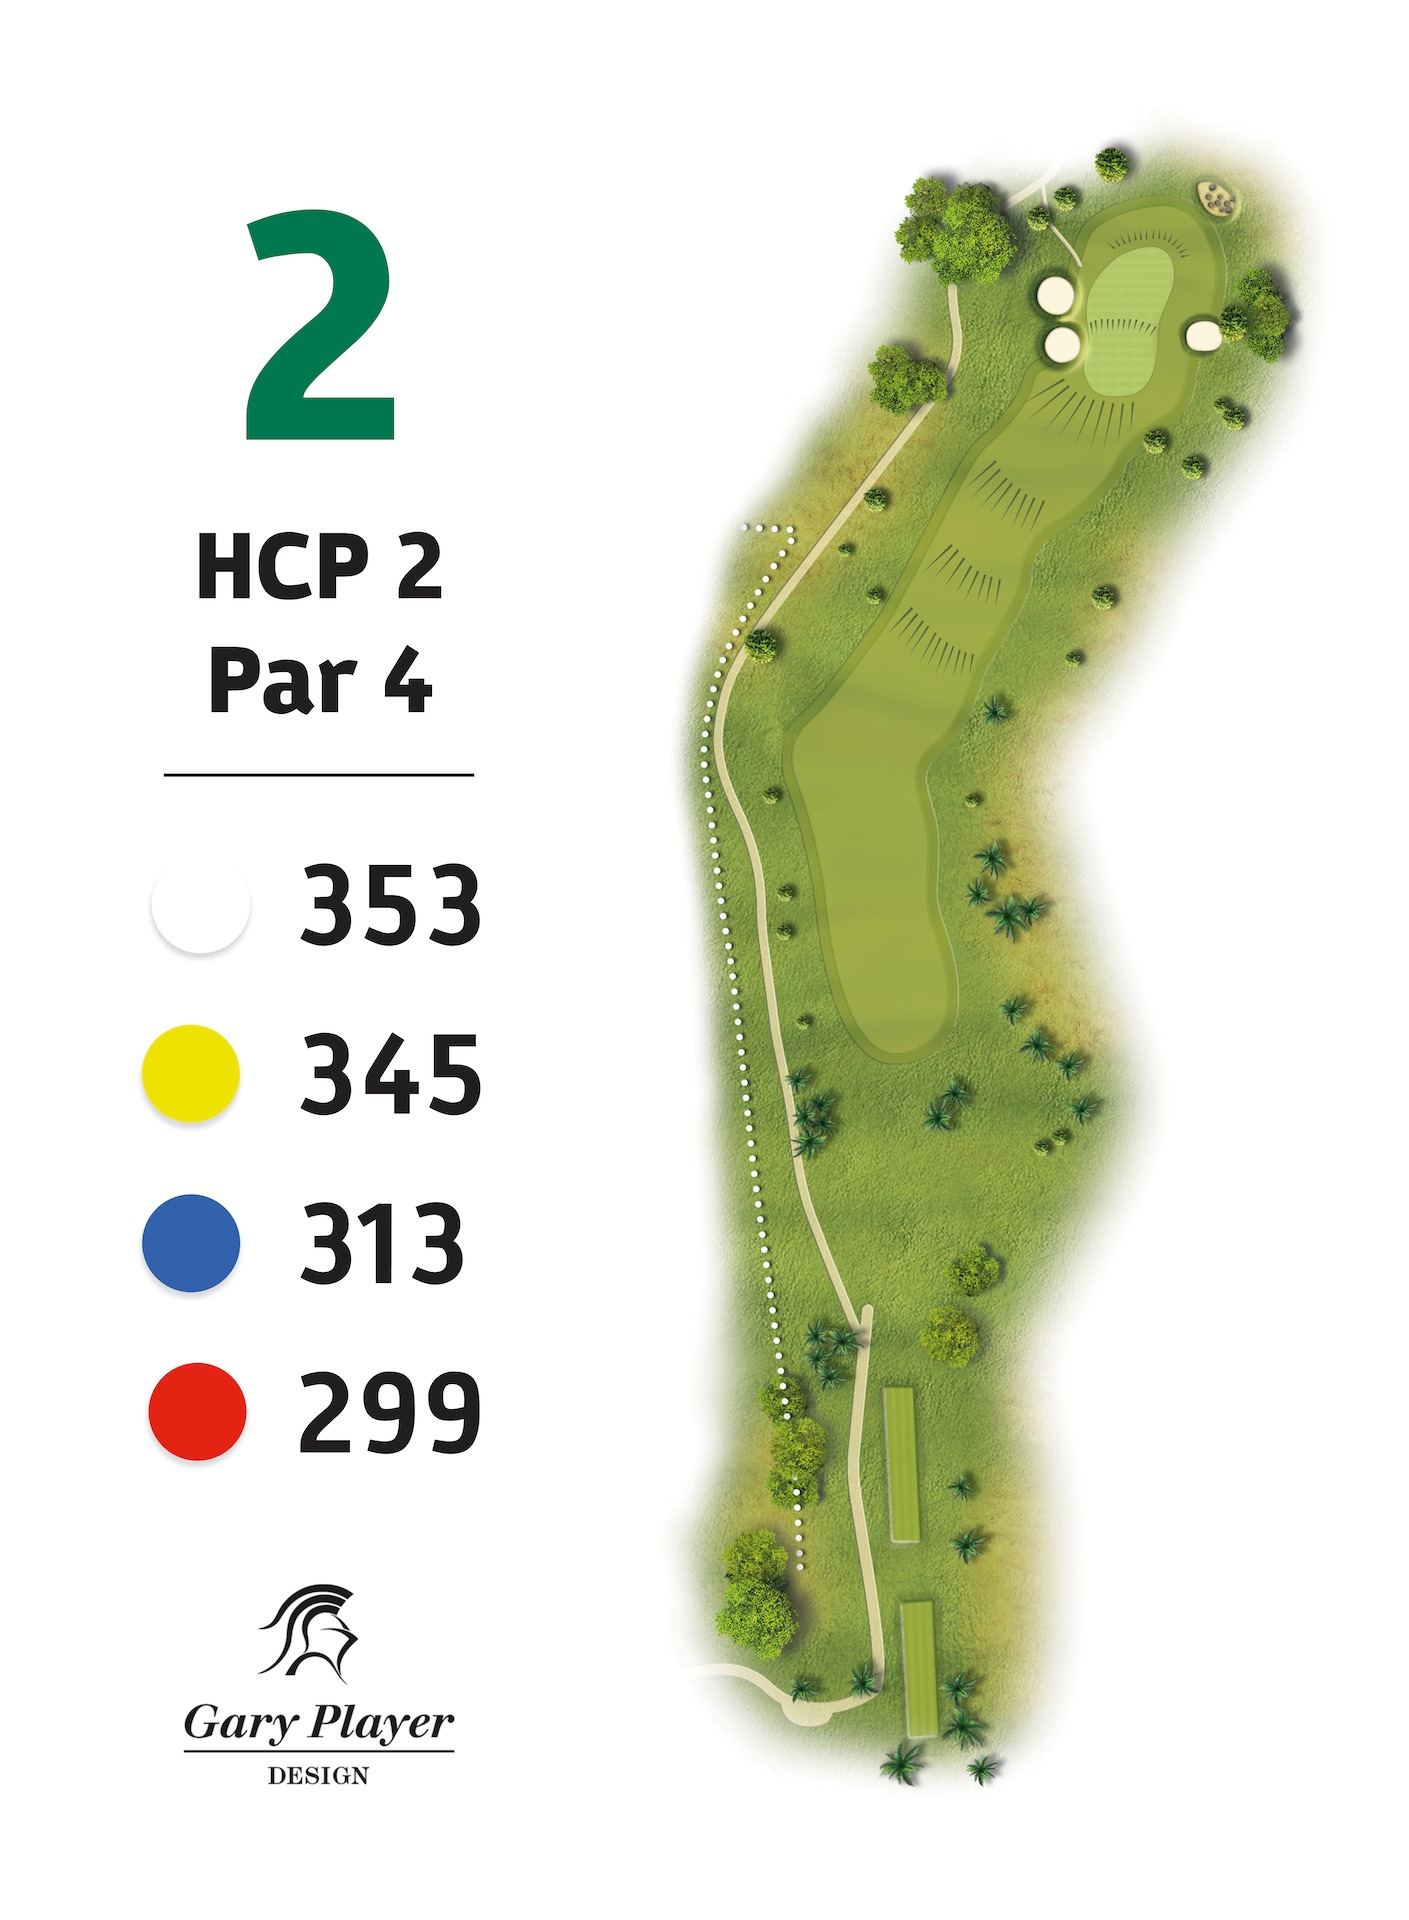 HOLE 2 | A very long drive is required to get up in two on this challenging dogleg right par 4. The large green is protected by a deep bunker on the left, which is to be avoided. The second shot to the green requires 1 or 2 extra clubs. There is another kinder bunker mid green on the right as well.